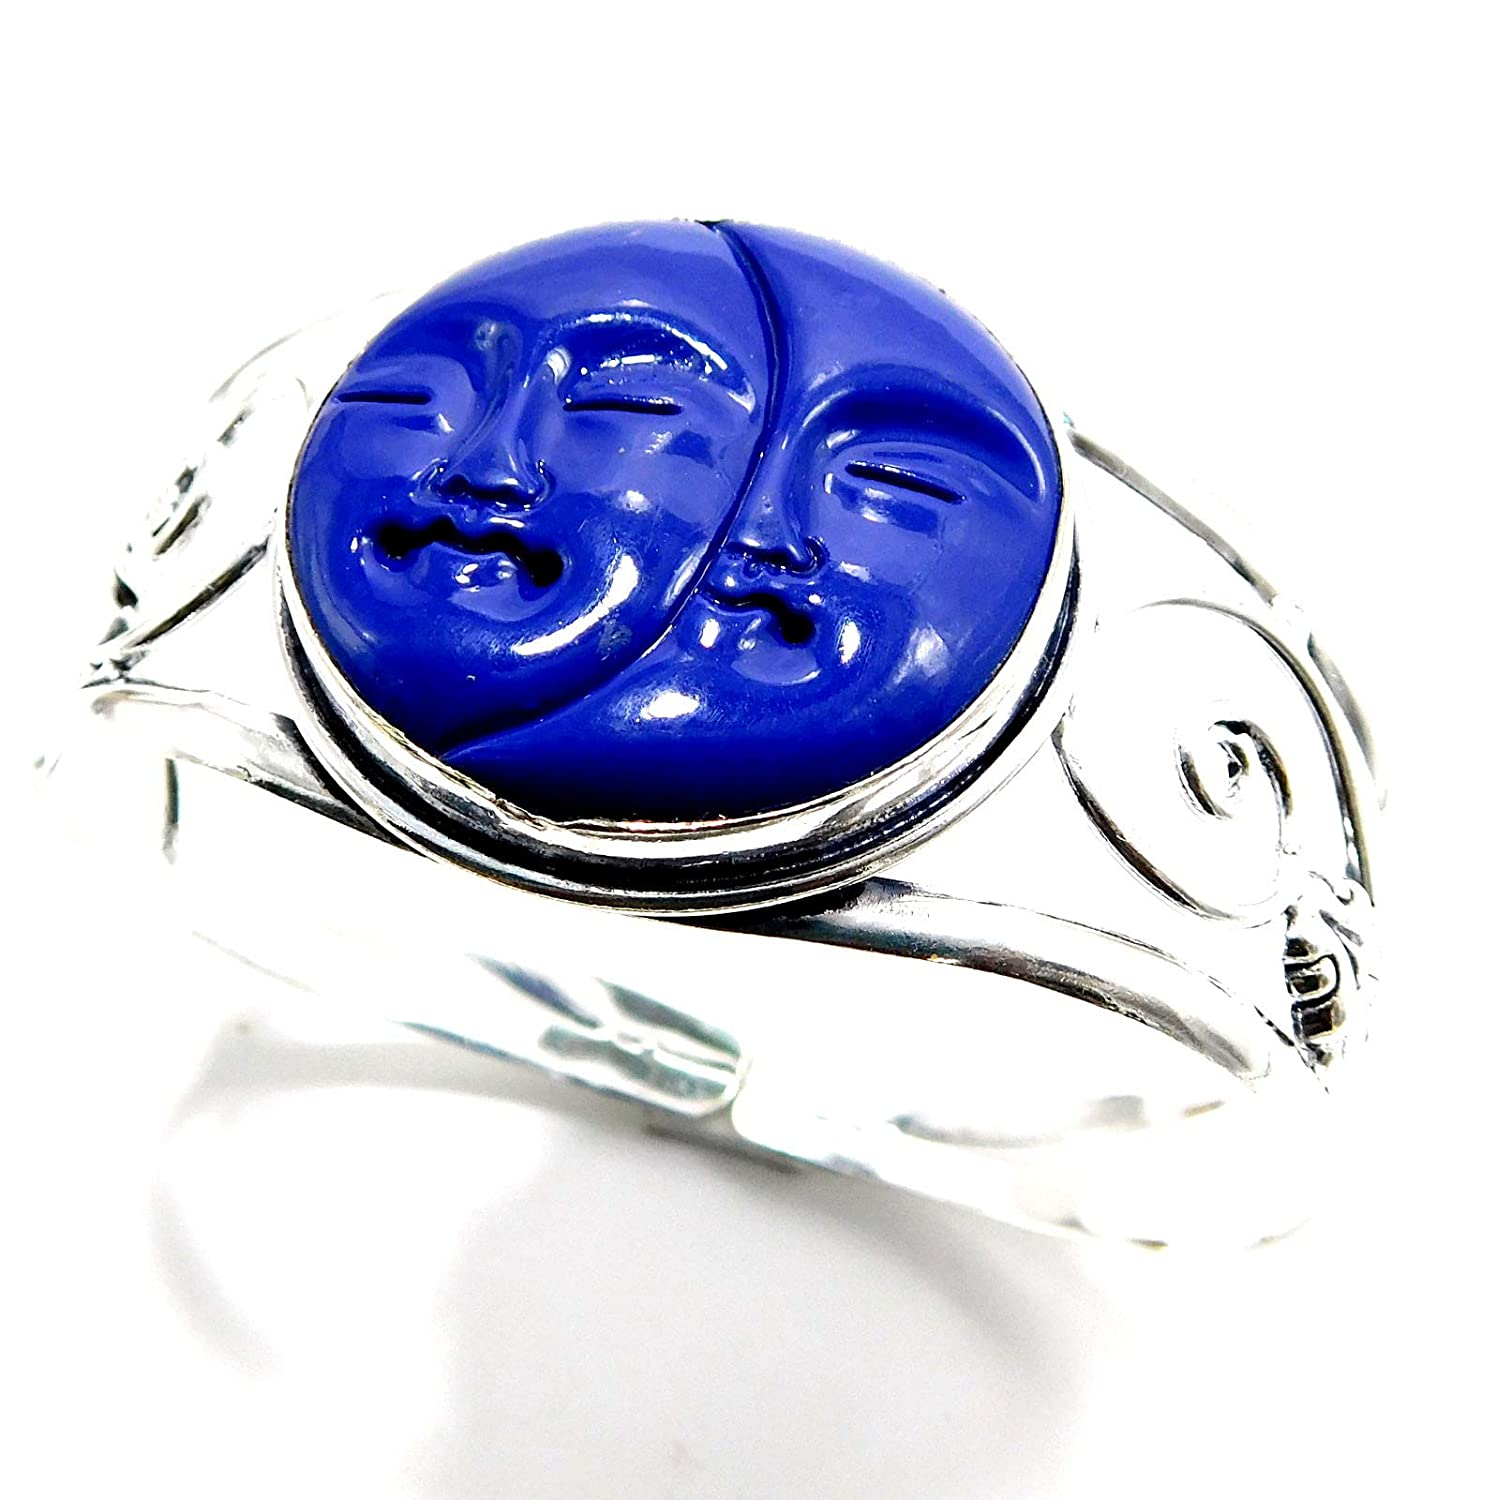 pratik-jewel Carved Moon Face 925 Sterling Silver Plated Handmade Jewelry Bangles 23 Gm